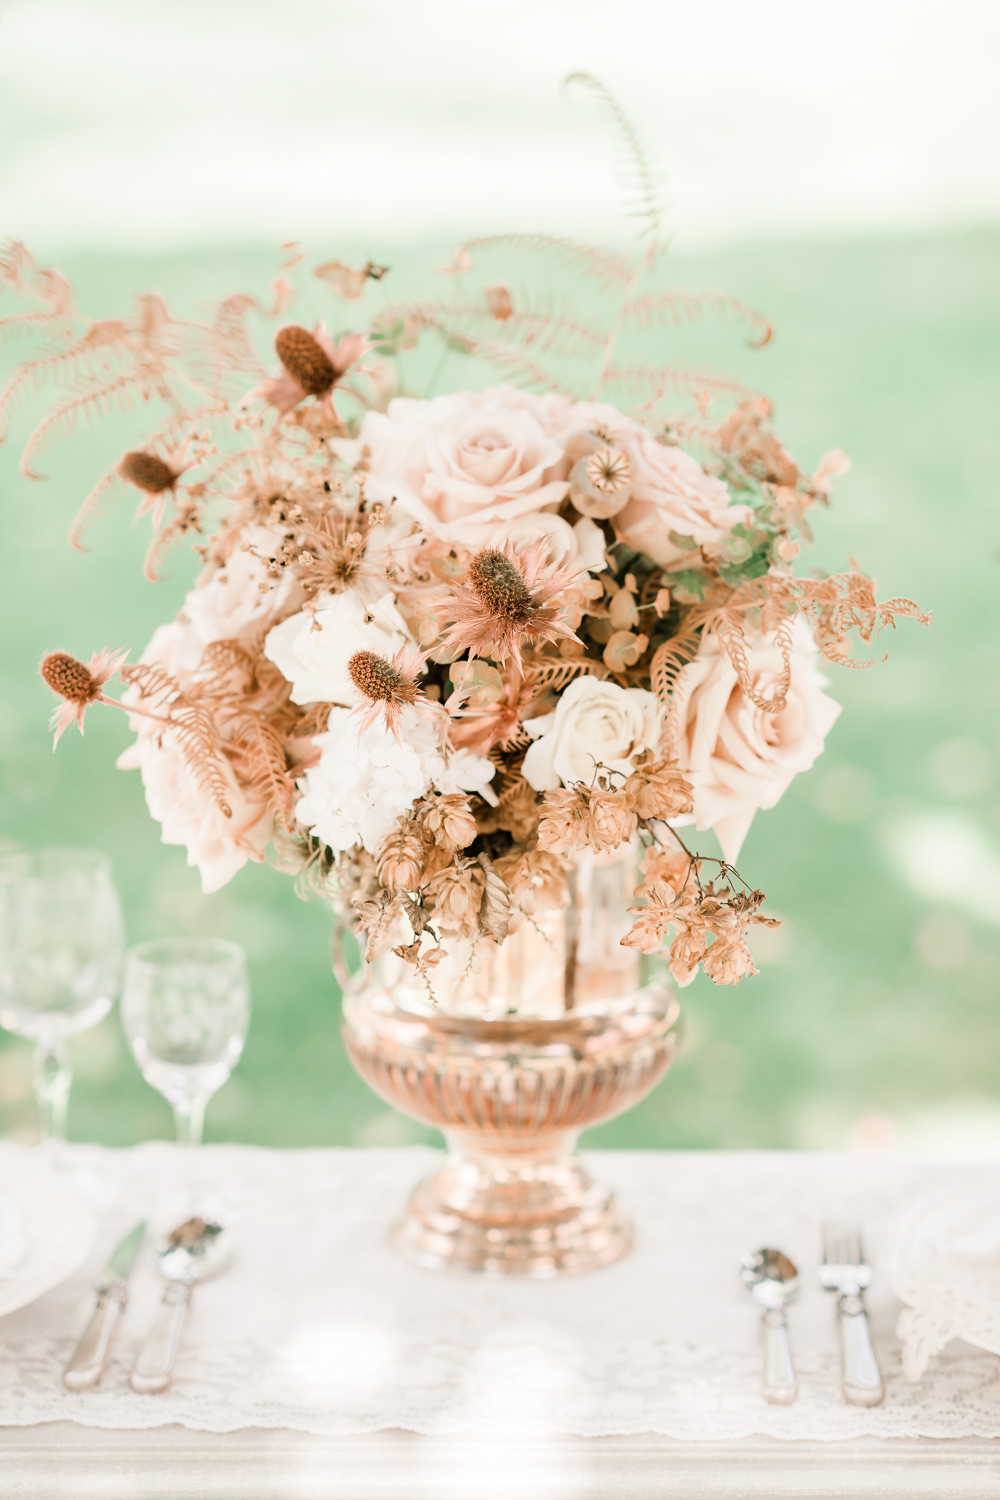 Flowers Rose Pale Pink Seed Heads Thistle Dried Copper Urn Table Centrepice Golden Autumnal Wedding Ideas Joanna Briggs Photography